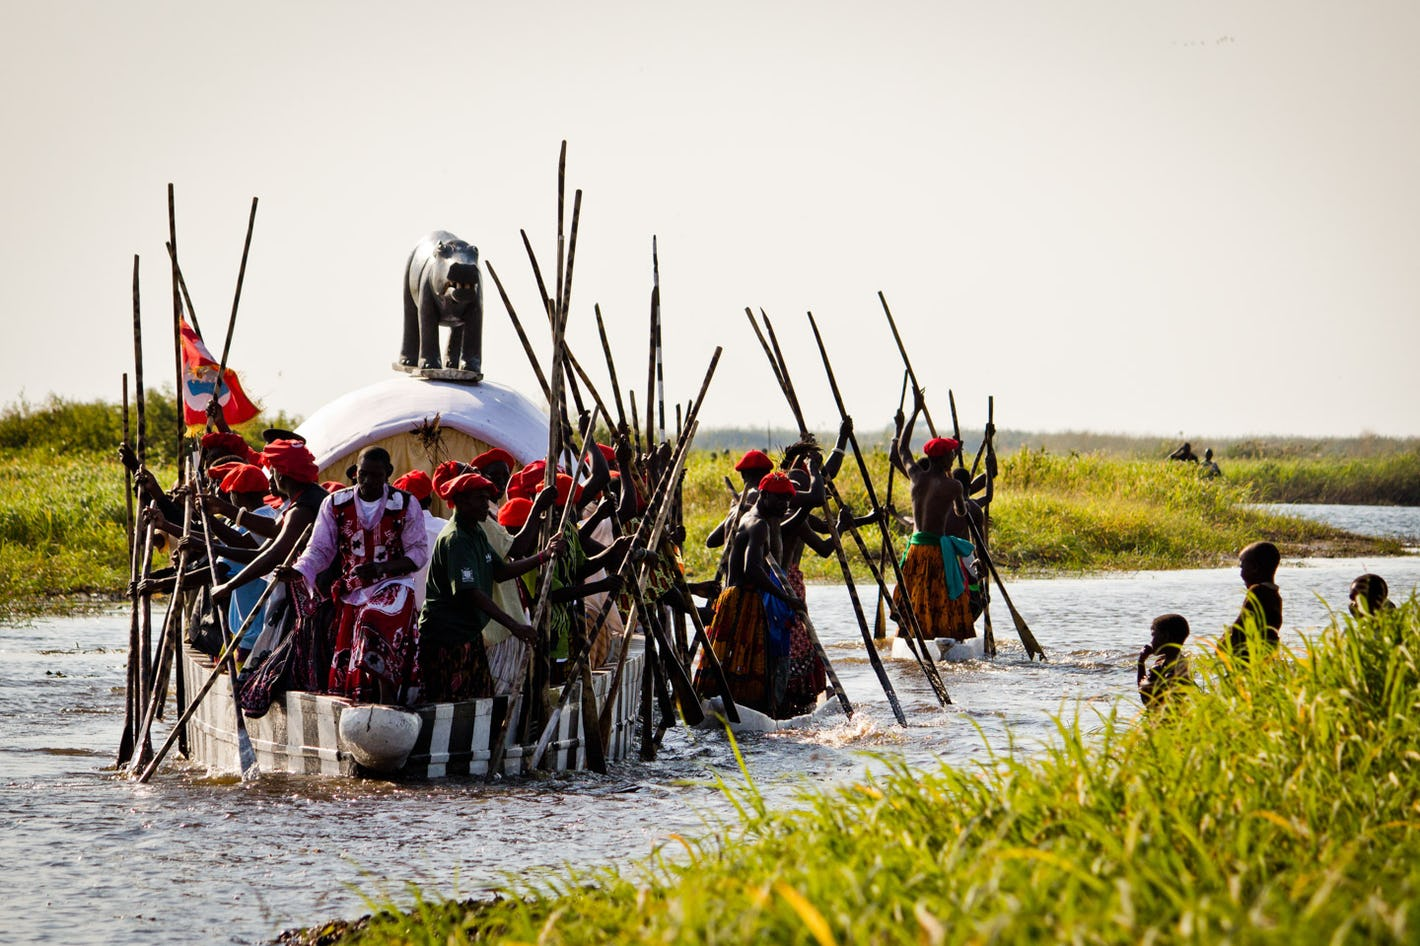 polers propel a large decorated barge down a river in Zambia